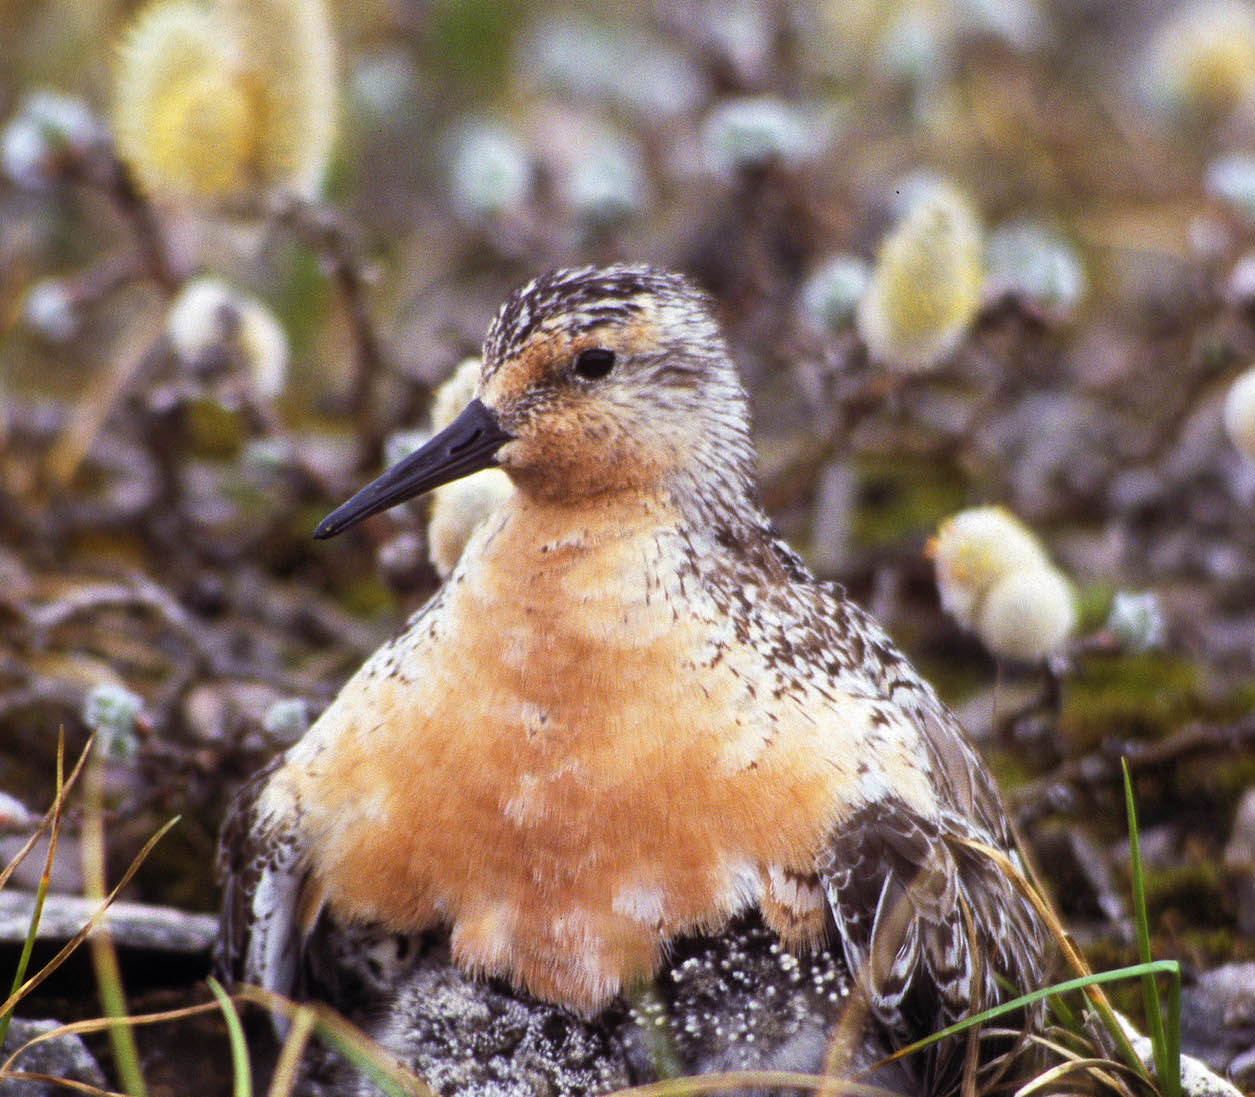 There is plenty of breeding habitat to support the population of these shorebirds today, but climate change could pose a threat in the future.